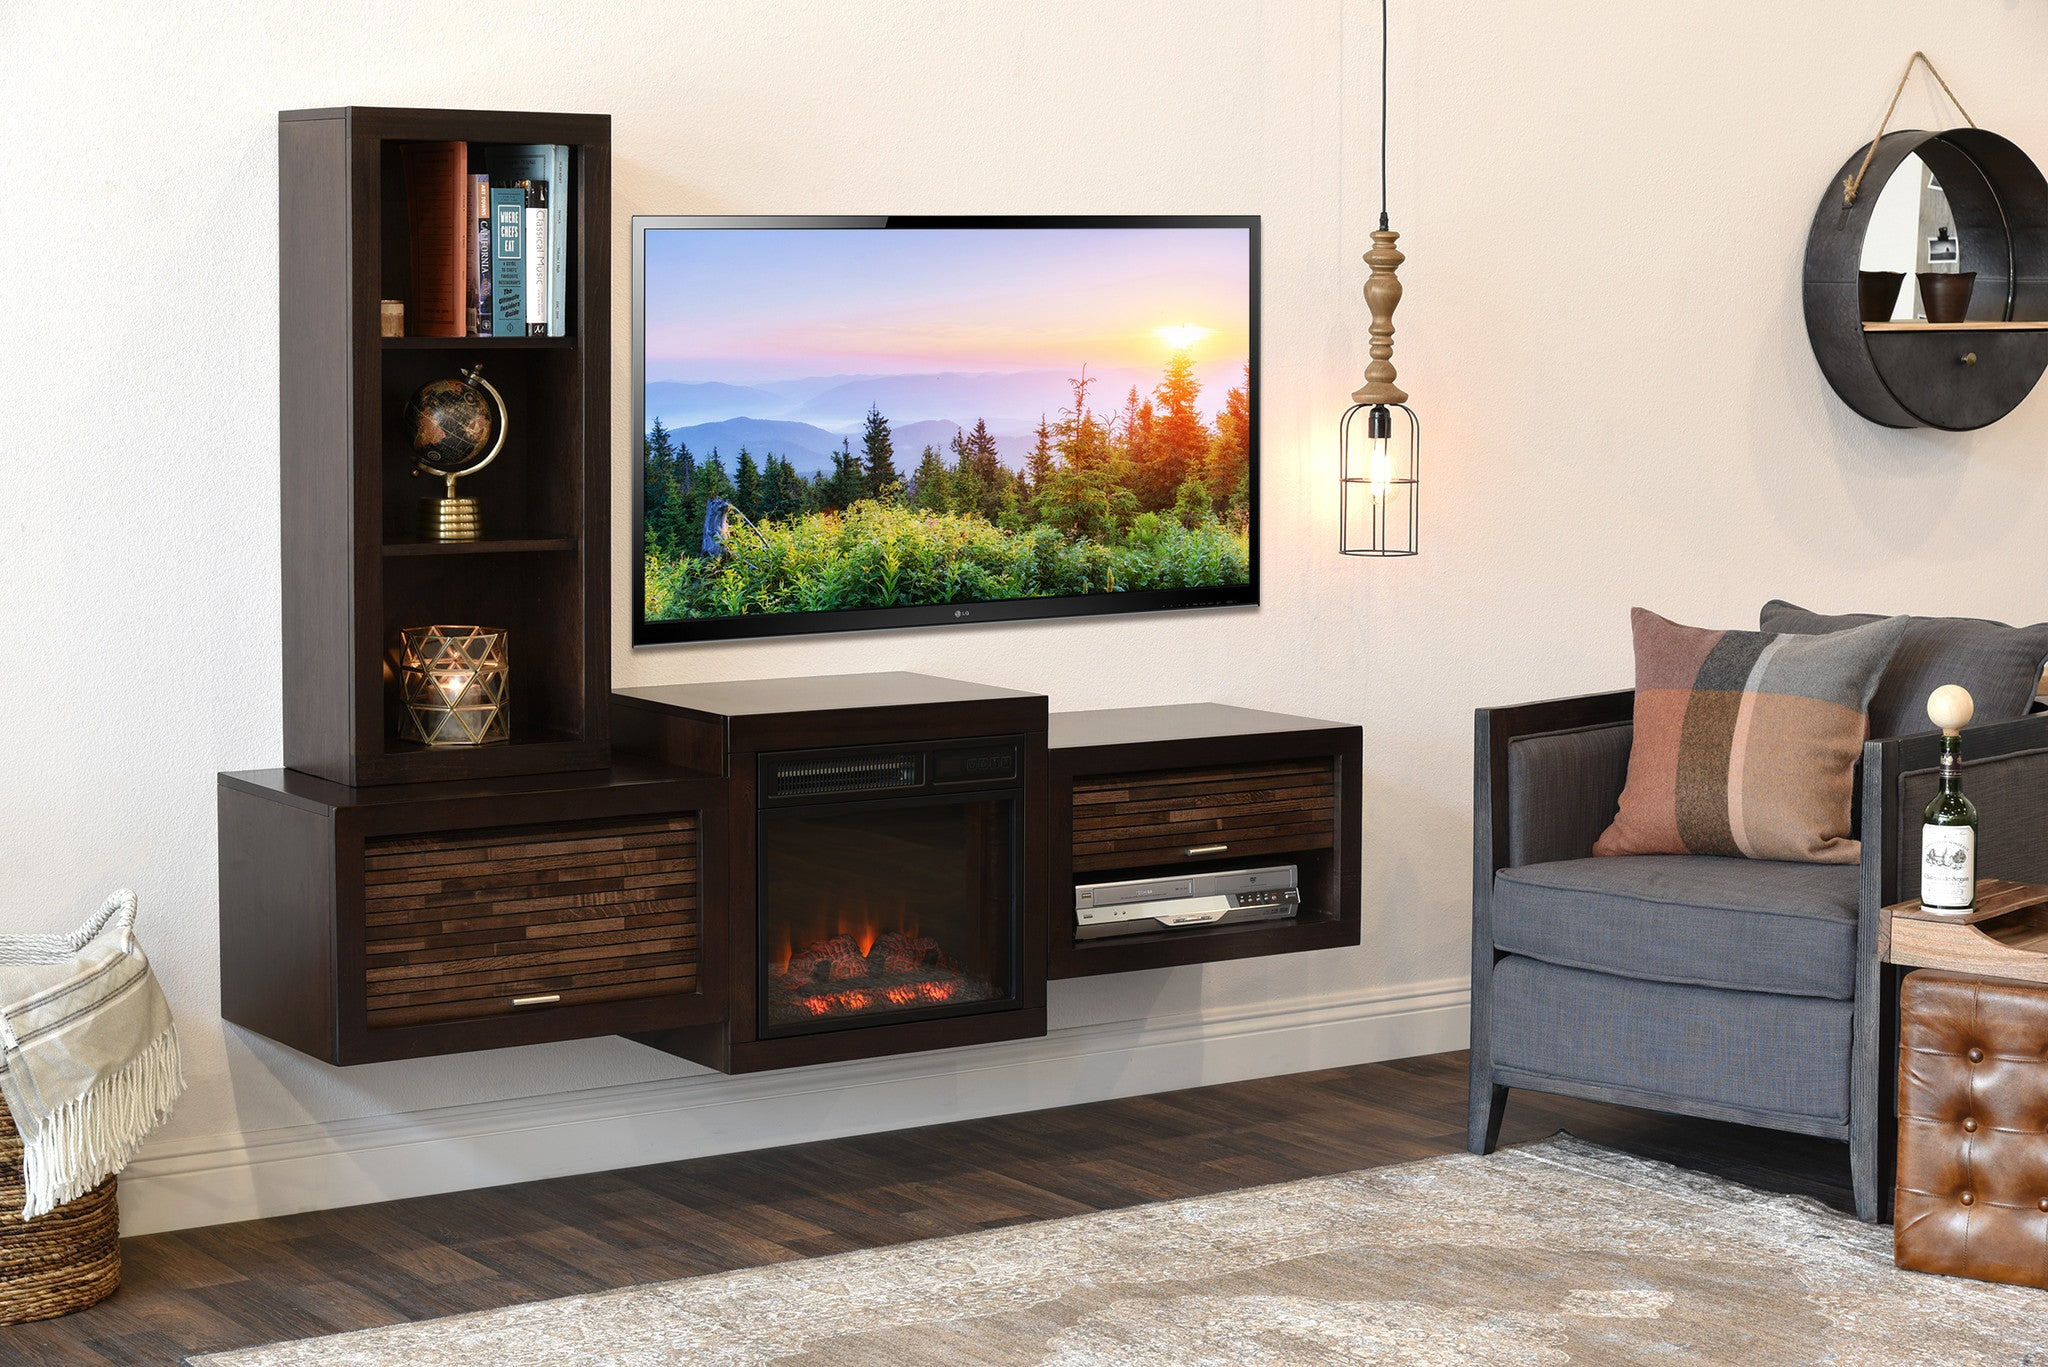 wall mount tv stand Floating Wall Mount TV Stand With Fireplace and Bookcase   ECO GEO  wall mount tv stand